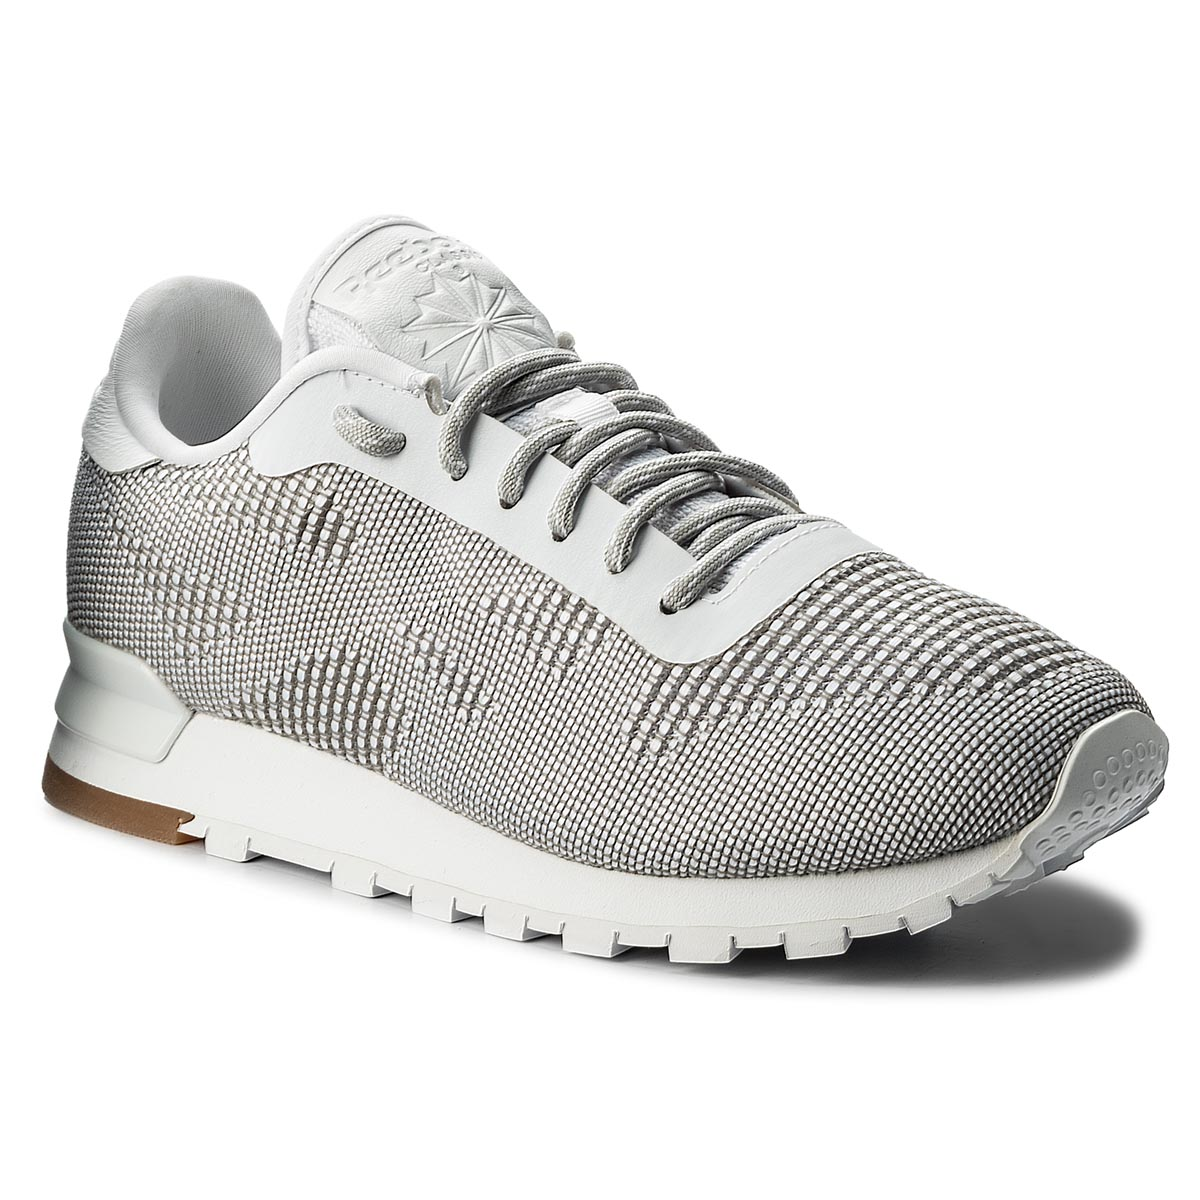 Buty Reebok - Cl Flexweave CN2136 White/Black/Skull Grey